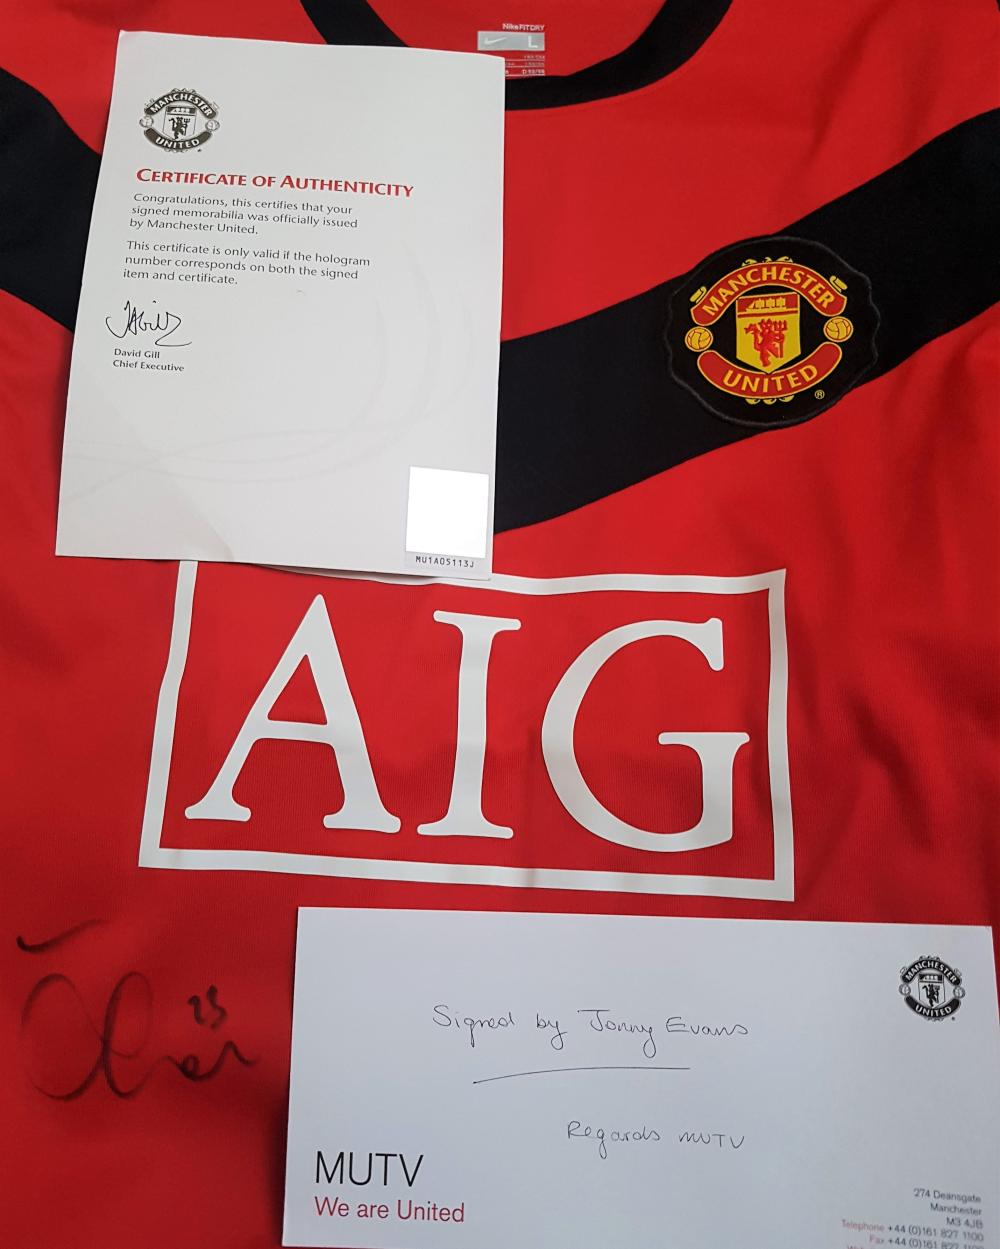 Lot 113: Signed Manchester United Shirt by Johnny Evans